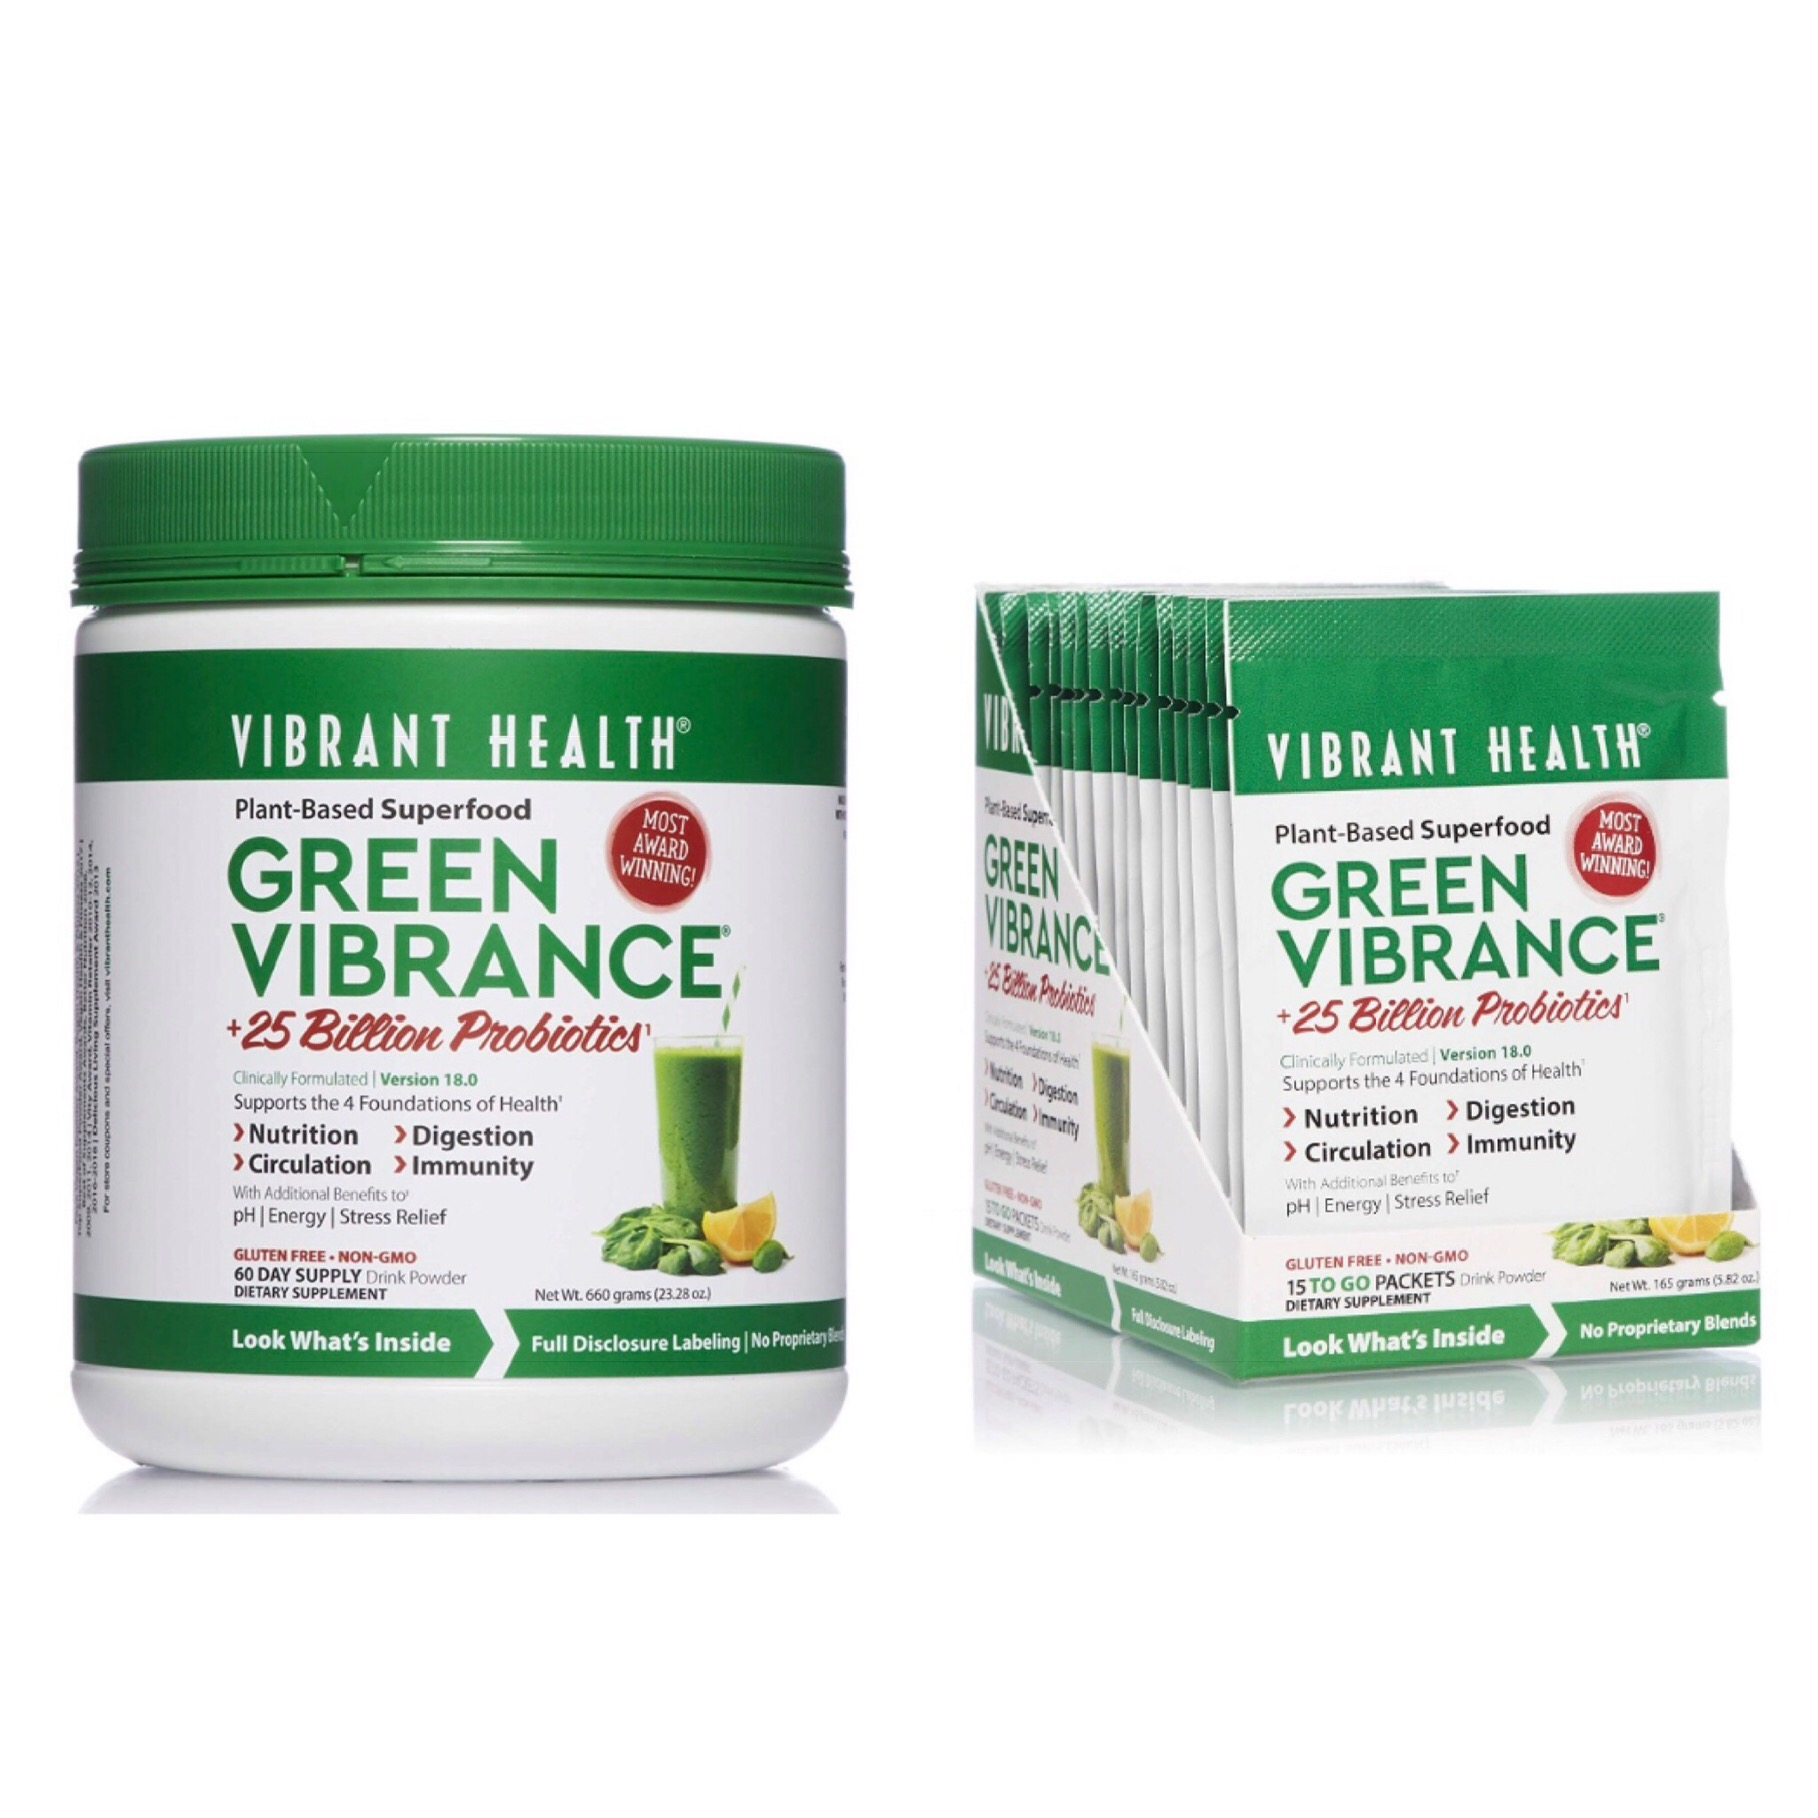 VIBRANT HEALTH Green Vibrance - - plant-based advanced daily superfood- if you aren't eating enough greens, this will provide all the nutrients you need and more!- so nutritious, it can take place of your daily multi▶️ for TRAVEL PACKETS, click HERE 💼